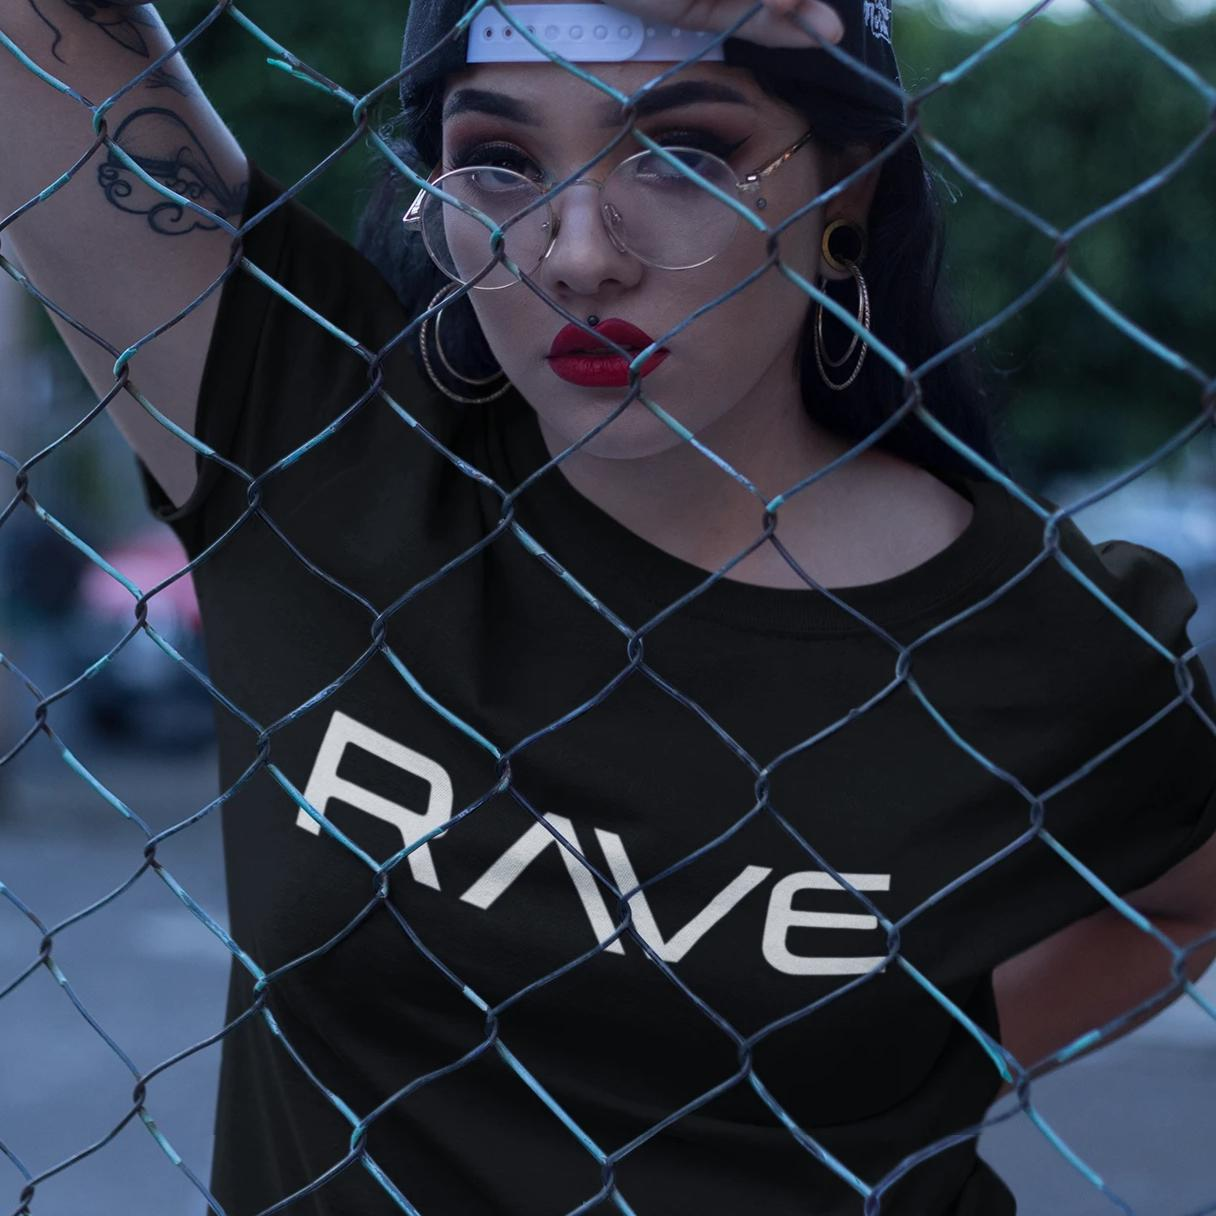 """RAVE"" - Rave On!® Black T-Shirt - Herren Premiumshirt-Herren Premium Shirt-Rave-On! I www.rave-on.shop I Deine Rave & Techno Szene Shop I casual, Design -, Global recommendation, rave, rave clothes, Rave Clothing, rave fashion, rave on, rave shirt, rave shop, rave wear, raver shirt, simple - Sexy Festival Streetwear , Clubwear & Raver Style"